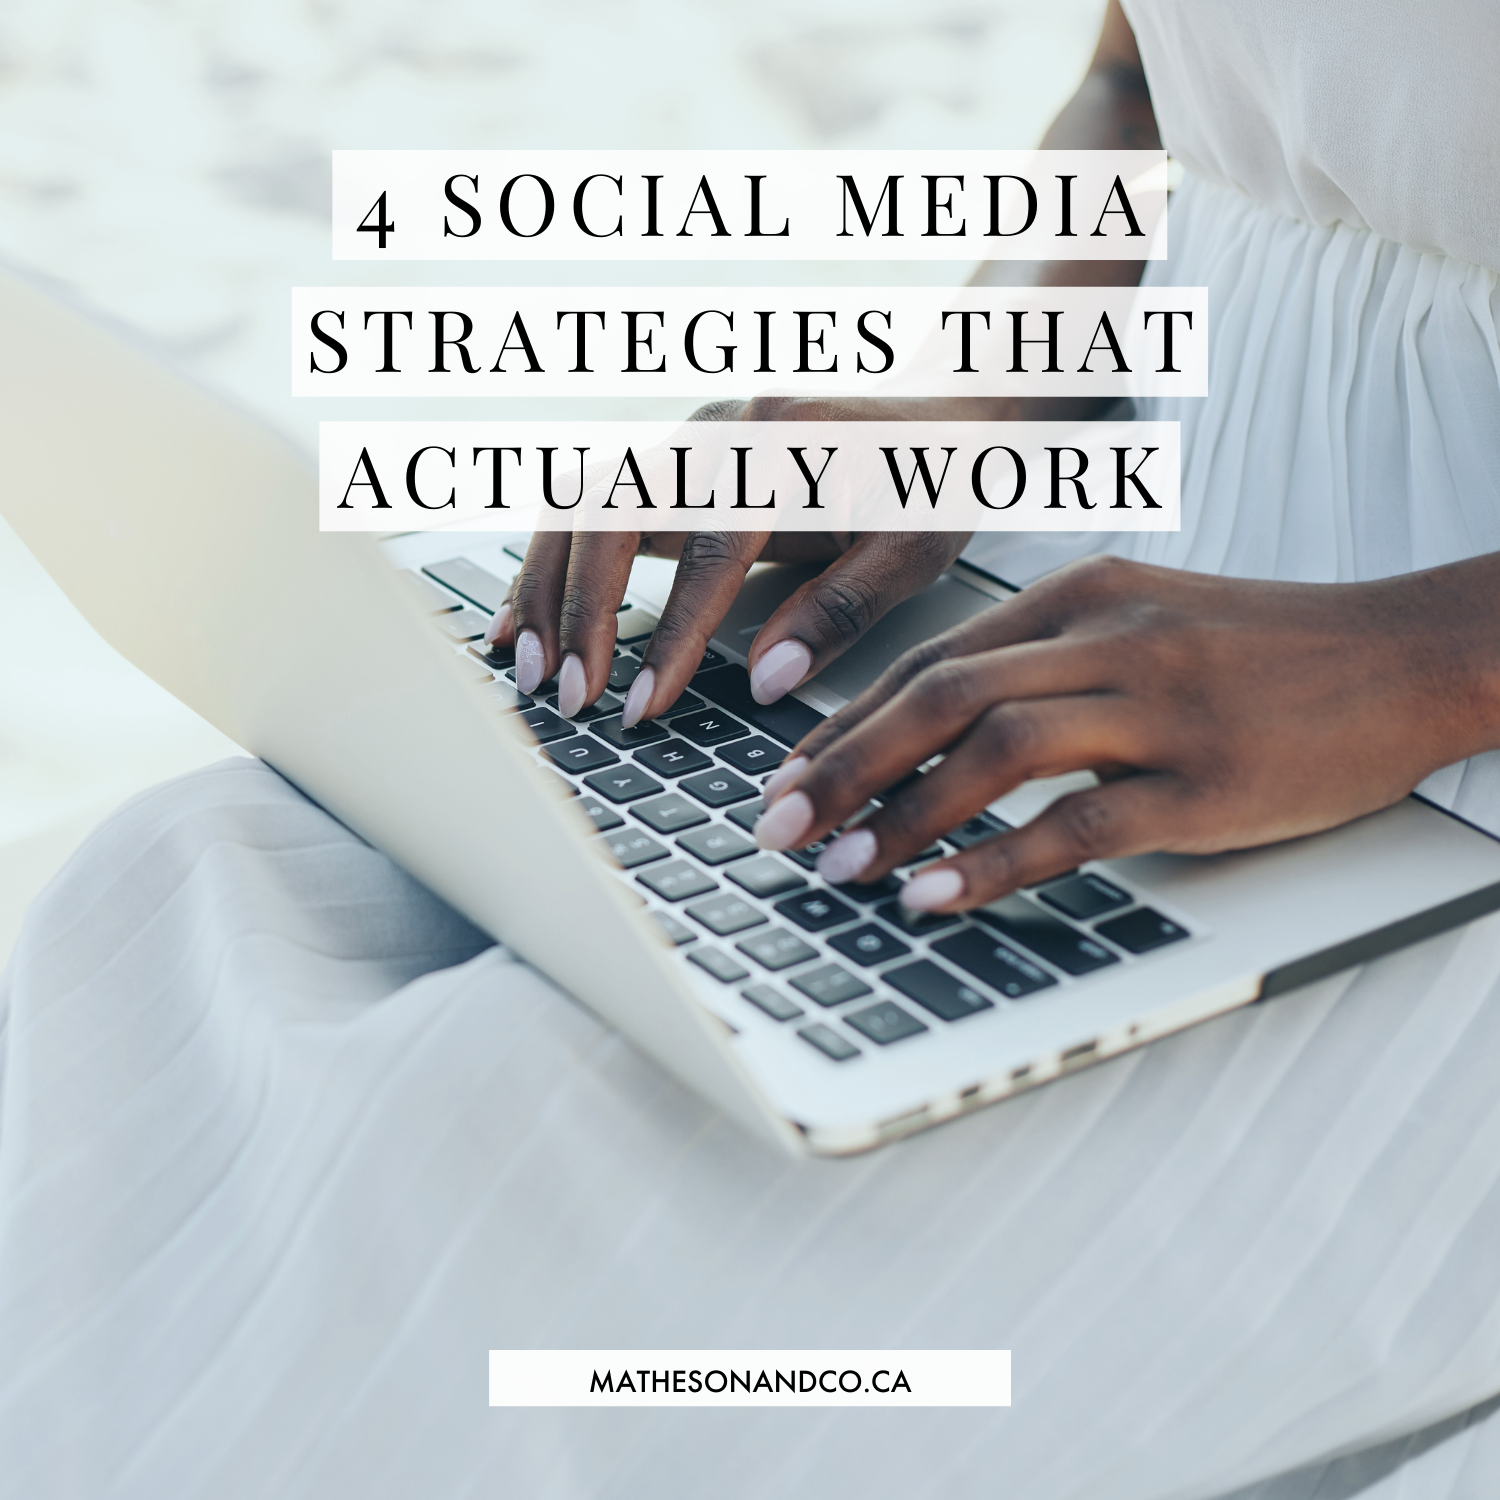 4 Social Media Strategies That Actually Work